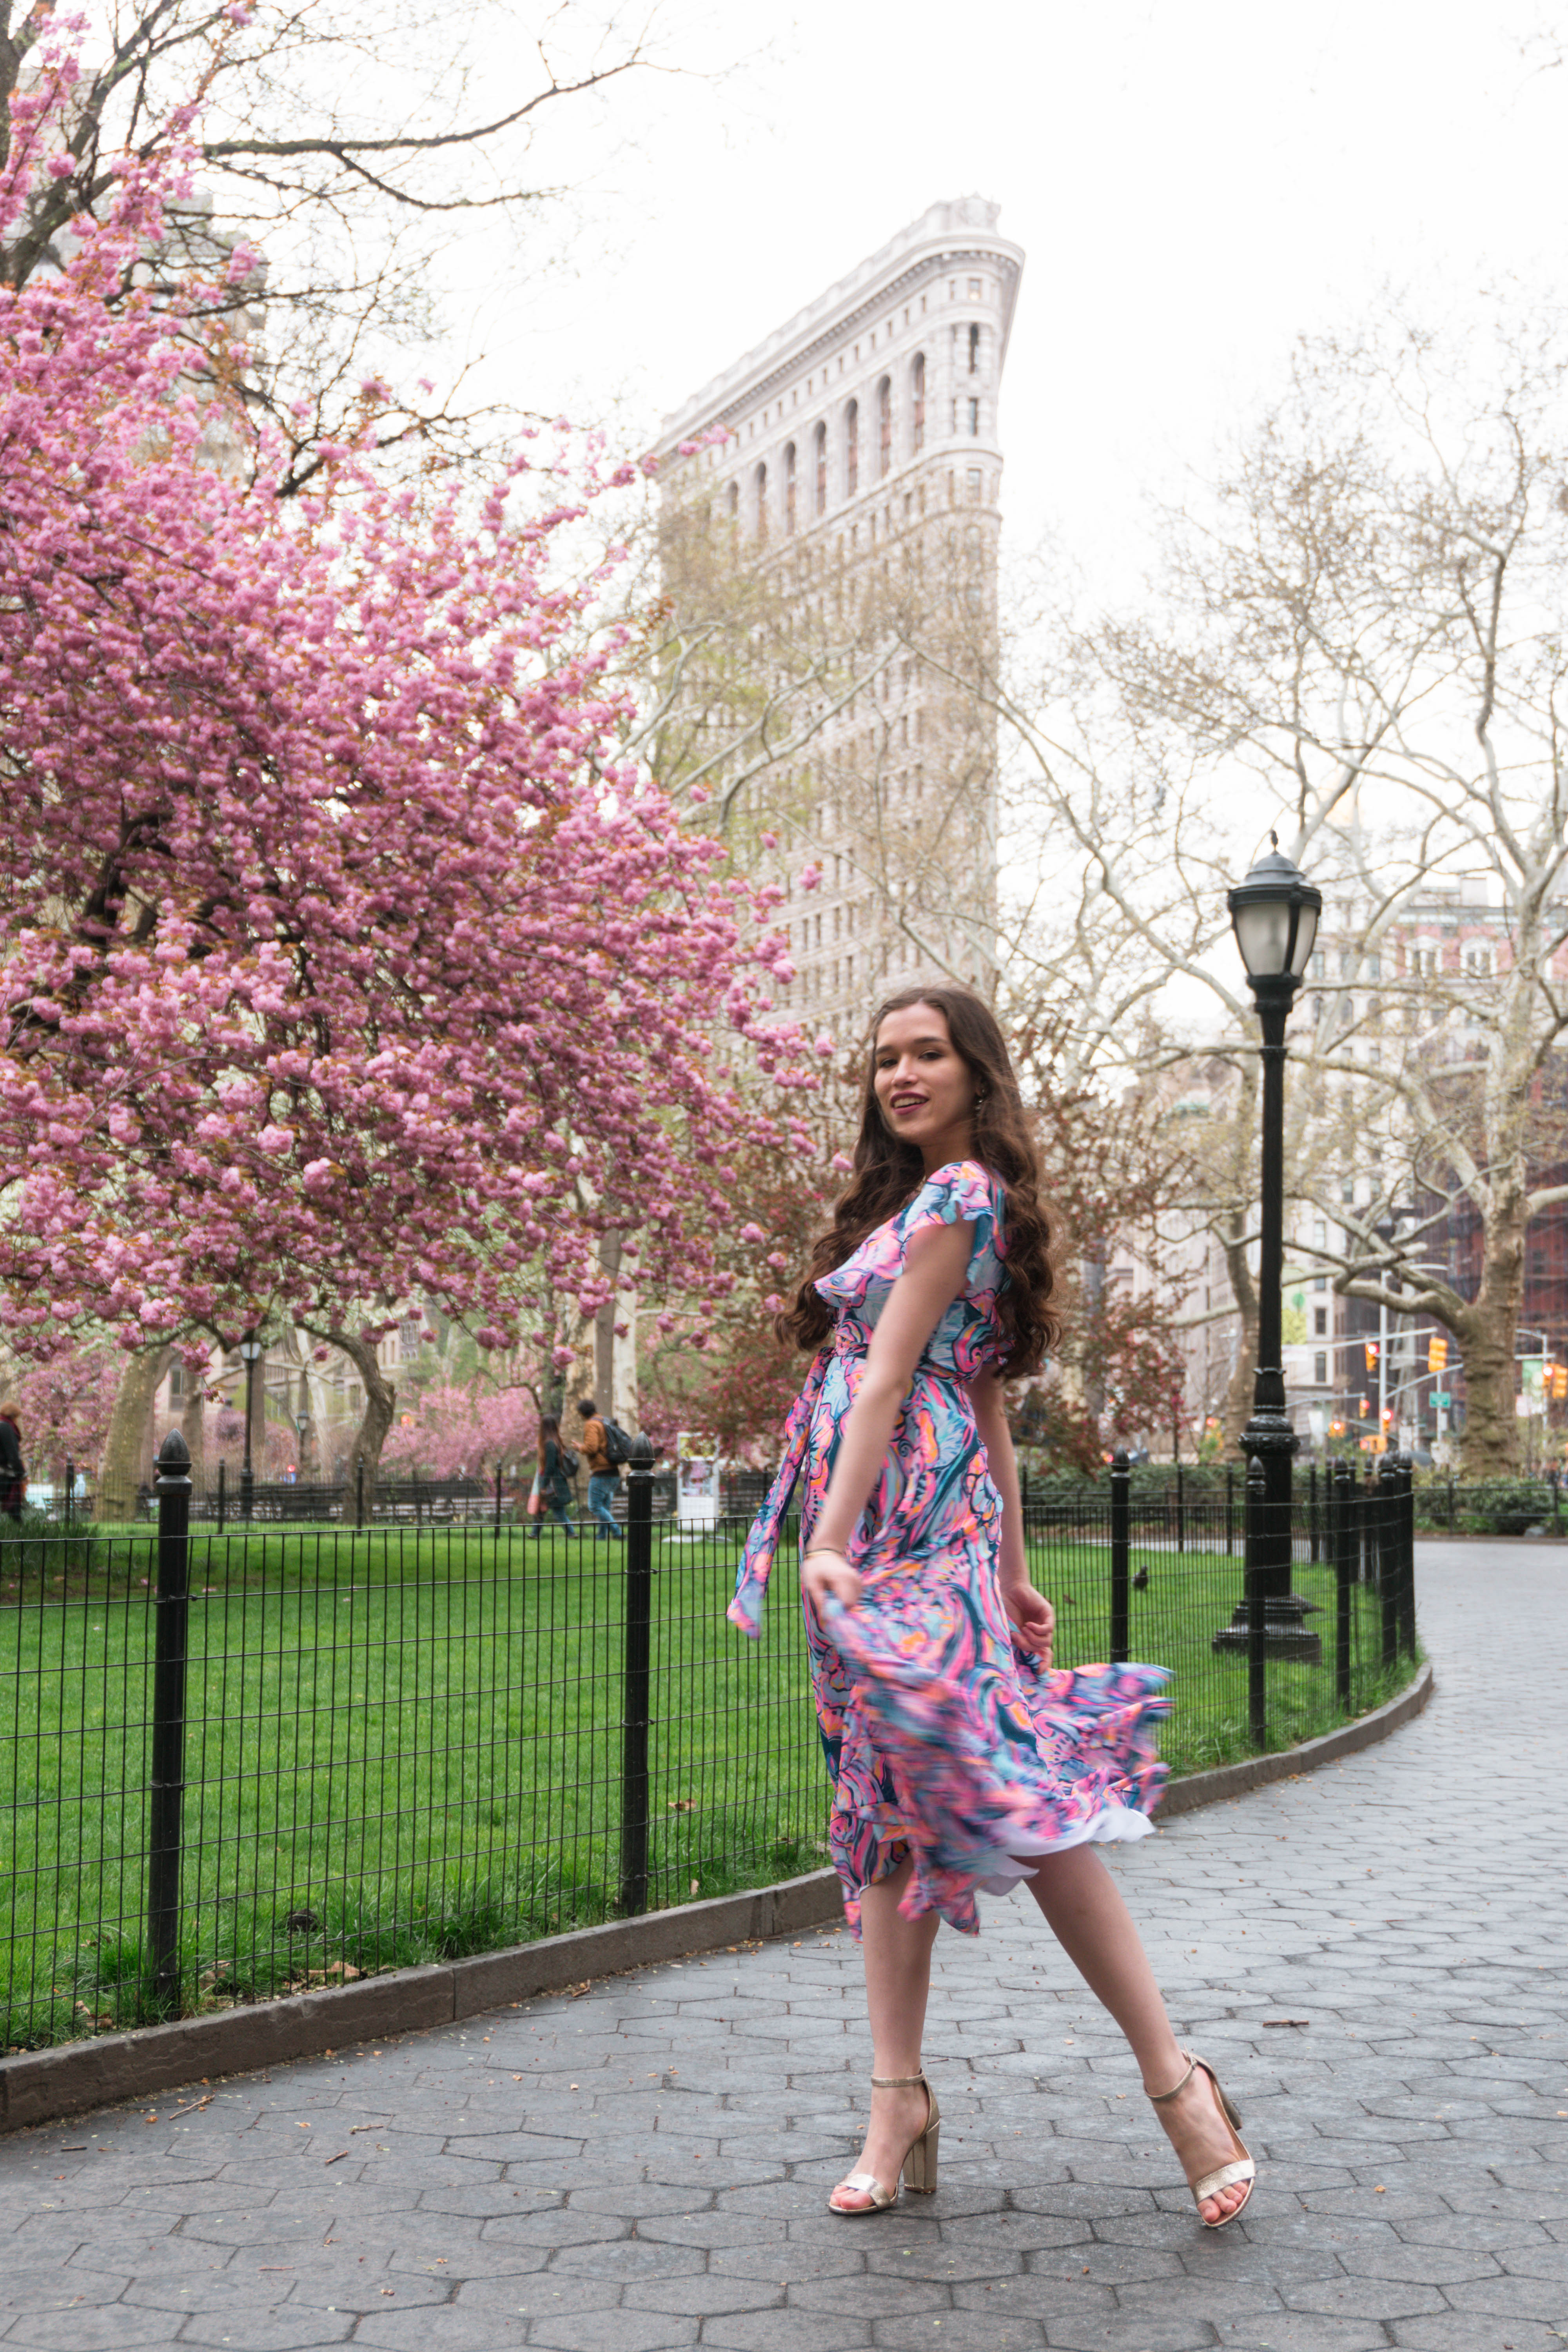 Lilly Pulitzer Marianna Dress in Boho Bateau Outside of the NYC Flatiron Building cherry blossom trees flowering blooms spring new york city wedding guest dress outfit ideas midi floral wrap dress with ruffle long brown hair curled brunette in gold strap metallic chunky heels madison square park may asian american trendy womens fashion inspiration inspo what to wear summer outdoor wedding event party